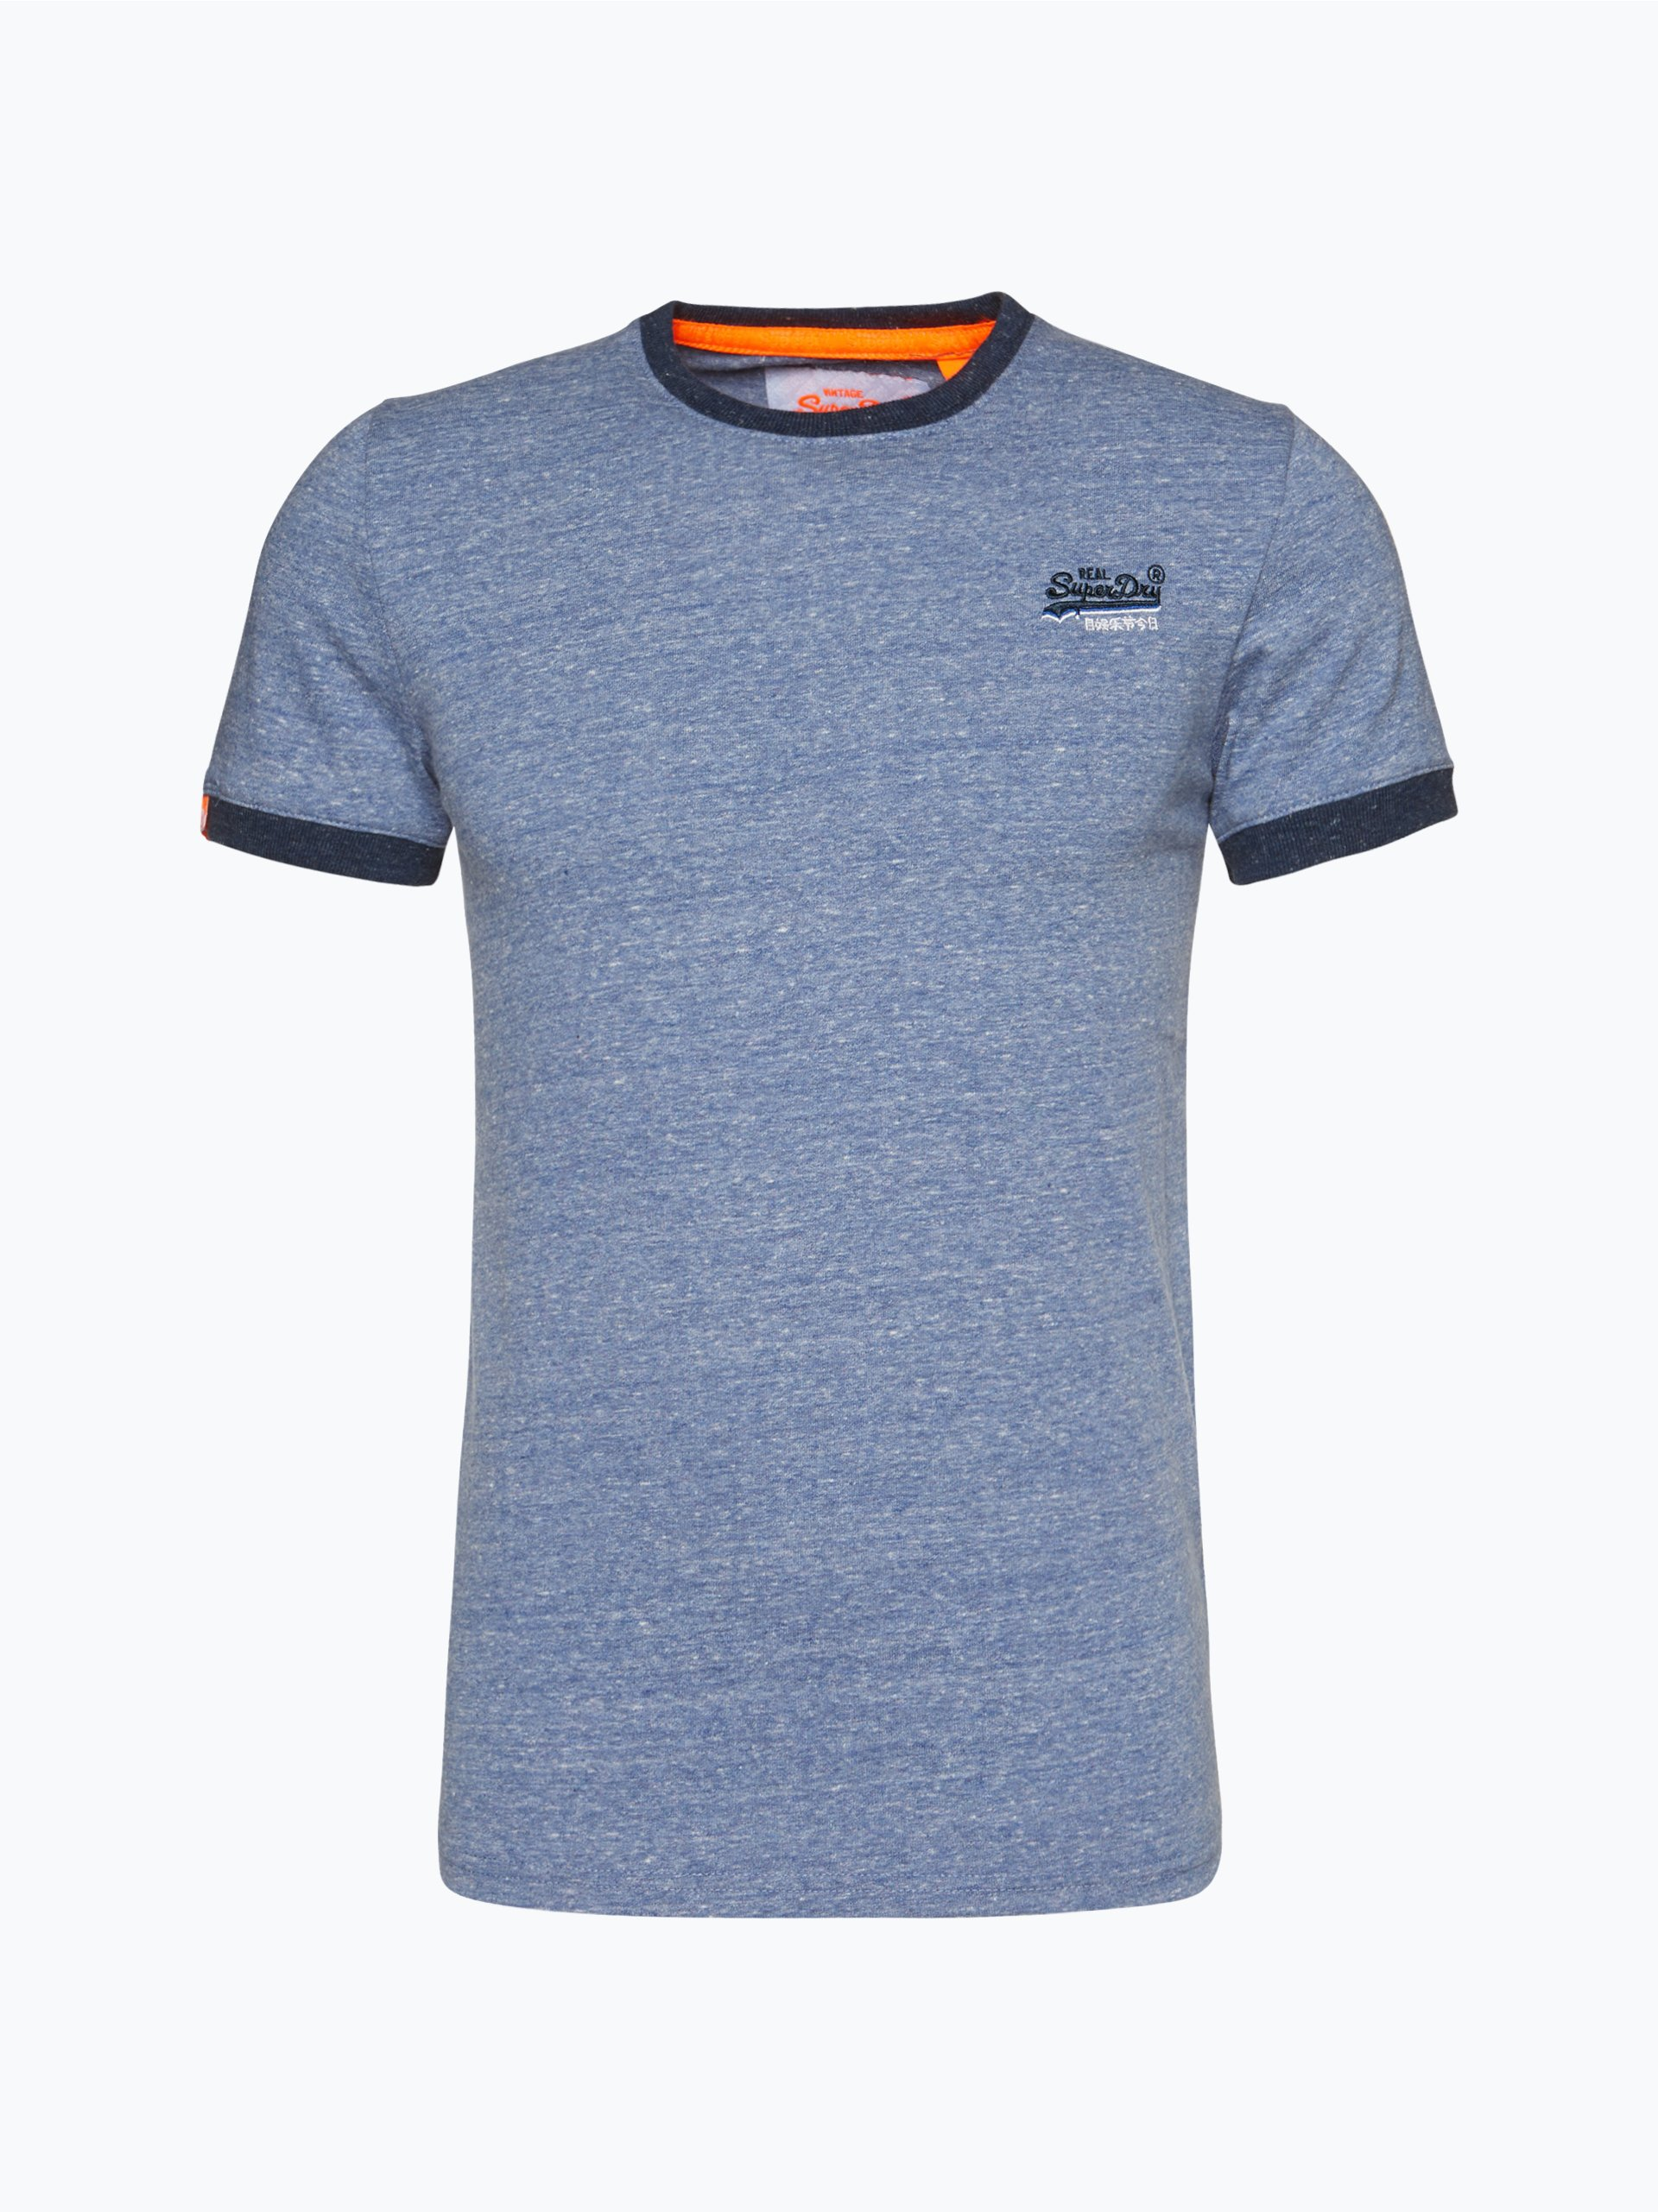 superdry herren t shirt indigo uni online kaufen. Black Bedroom Furniture Sets. Home Design Ideas